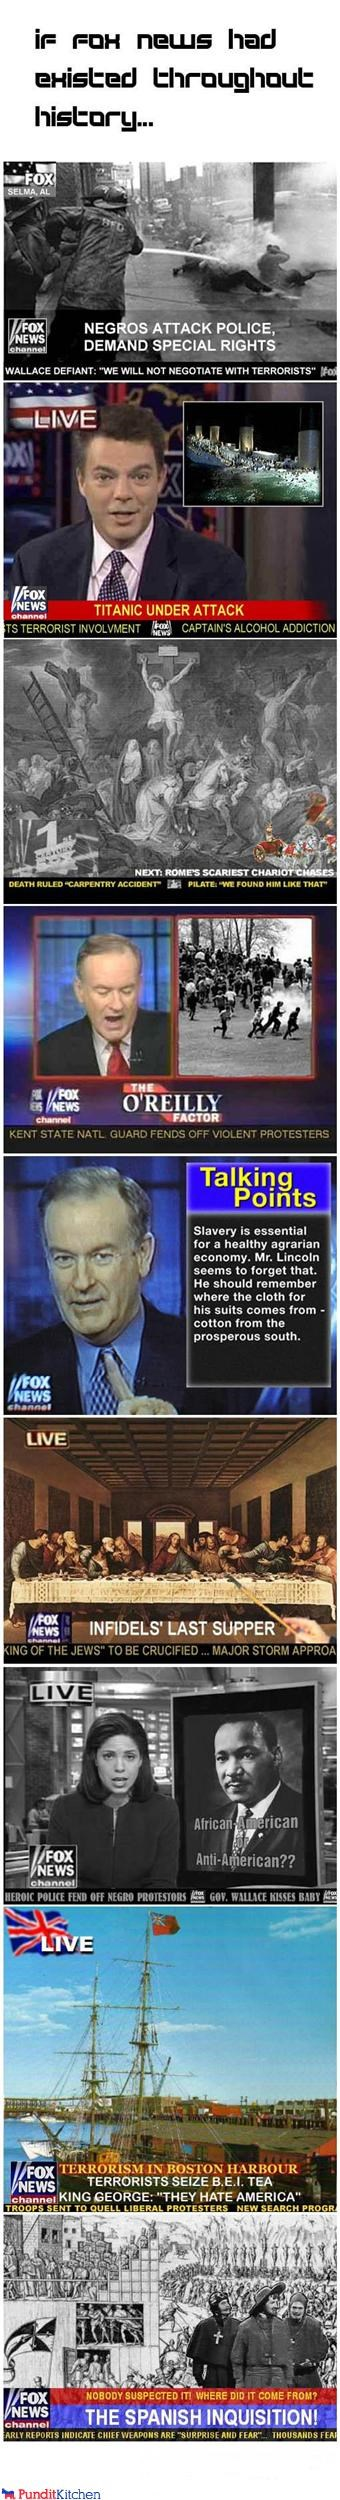 fox news history political pictures - 4621083648